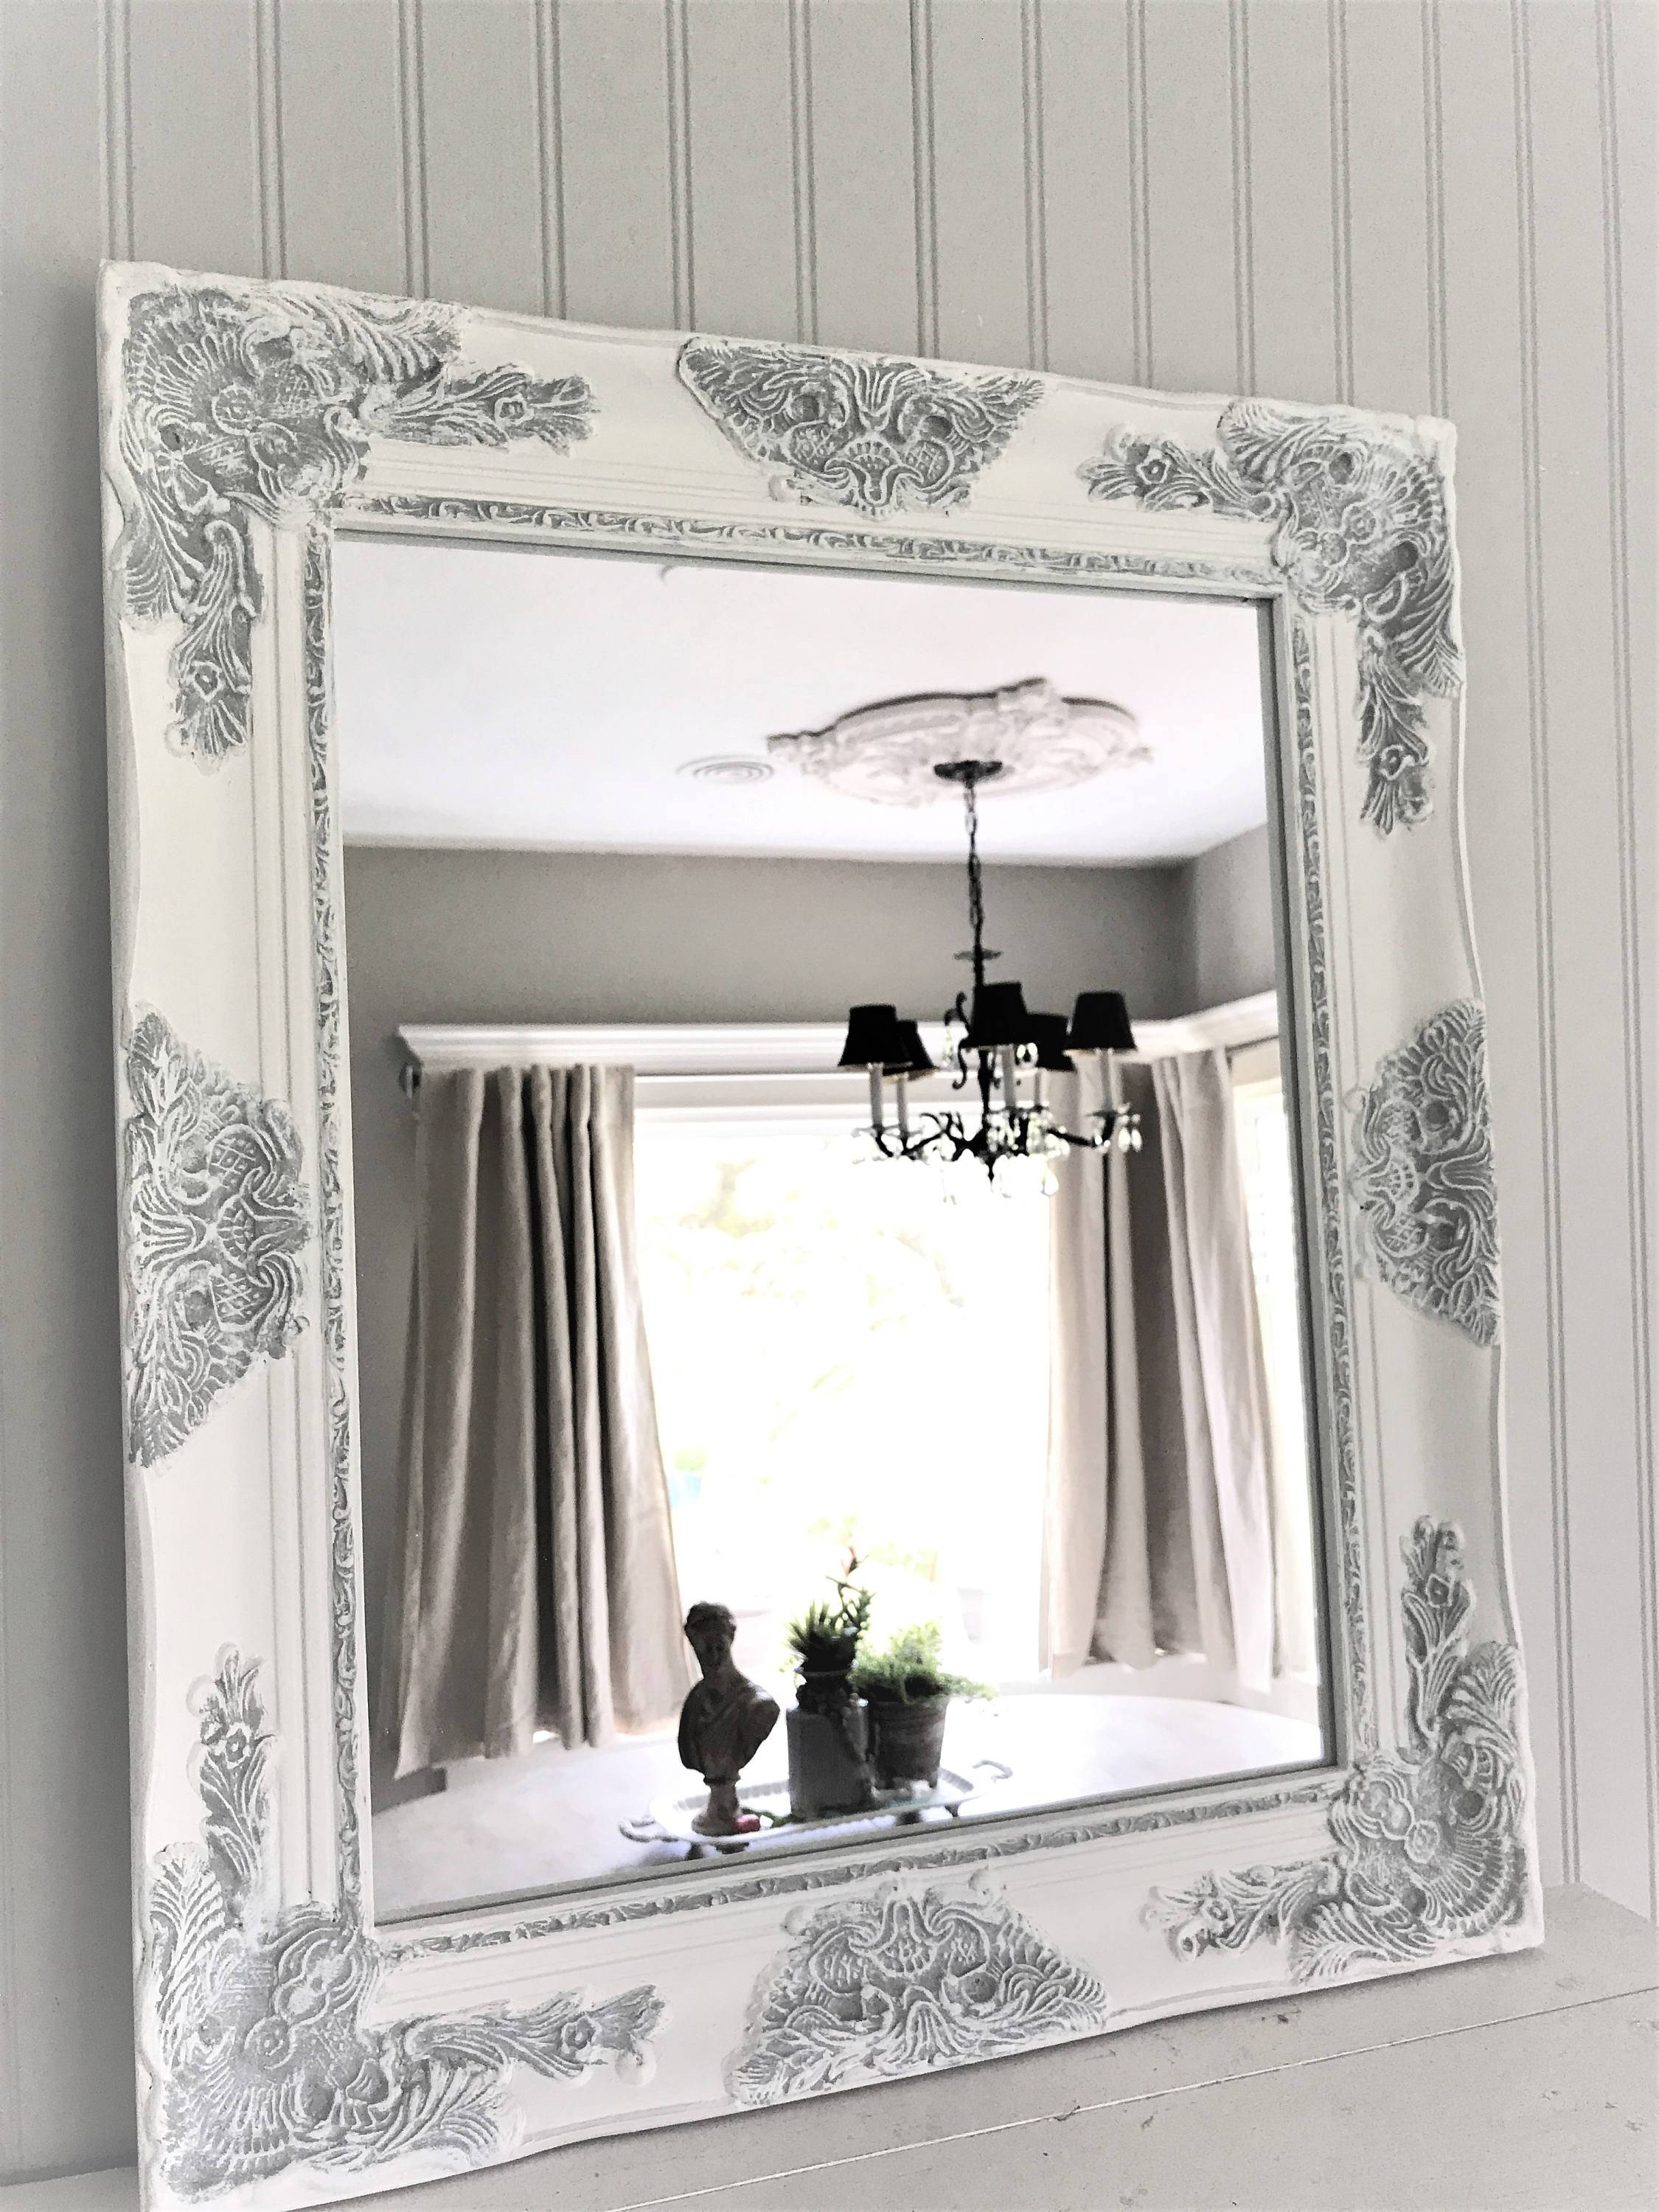 Shabby Chic Mirror Large Mirror Bathroom Mirror Vanity in White Large Shabby Chic Mirrors (Image 13 of 15)